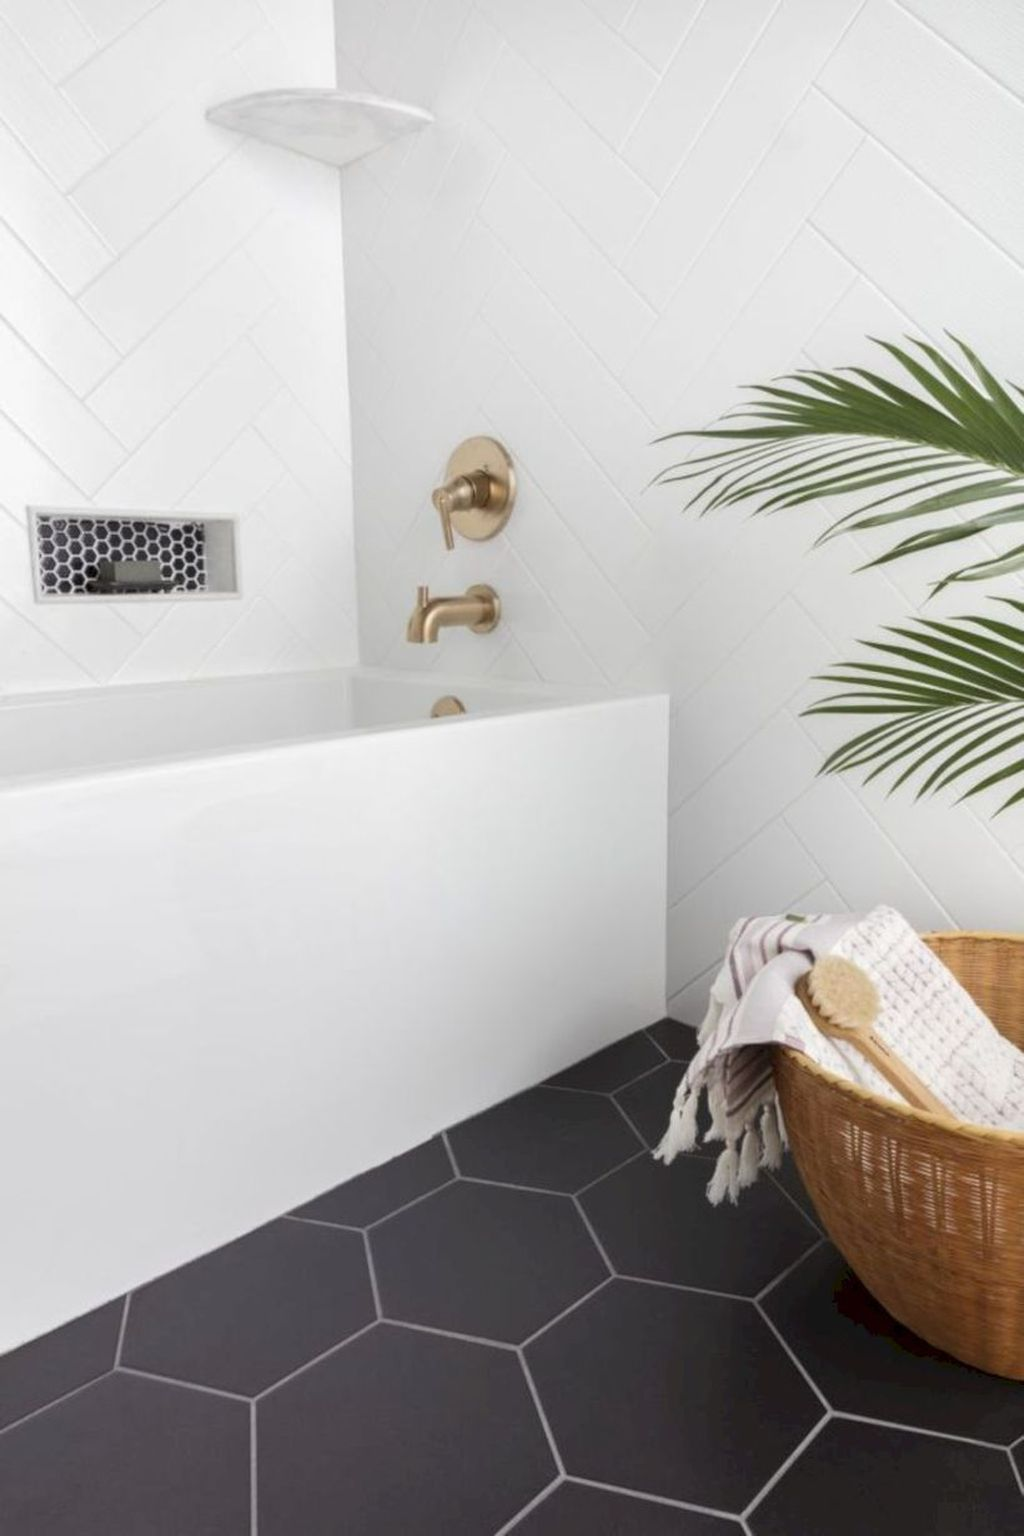 31 Inspiring Bathroom Tile Ideas White Bathroom Tiles Bathroom Tile Designs Stylish Bathroom